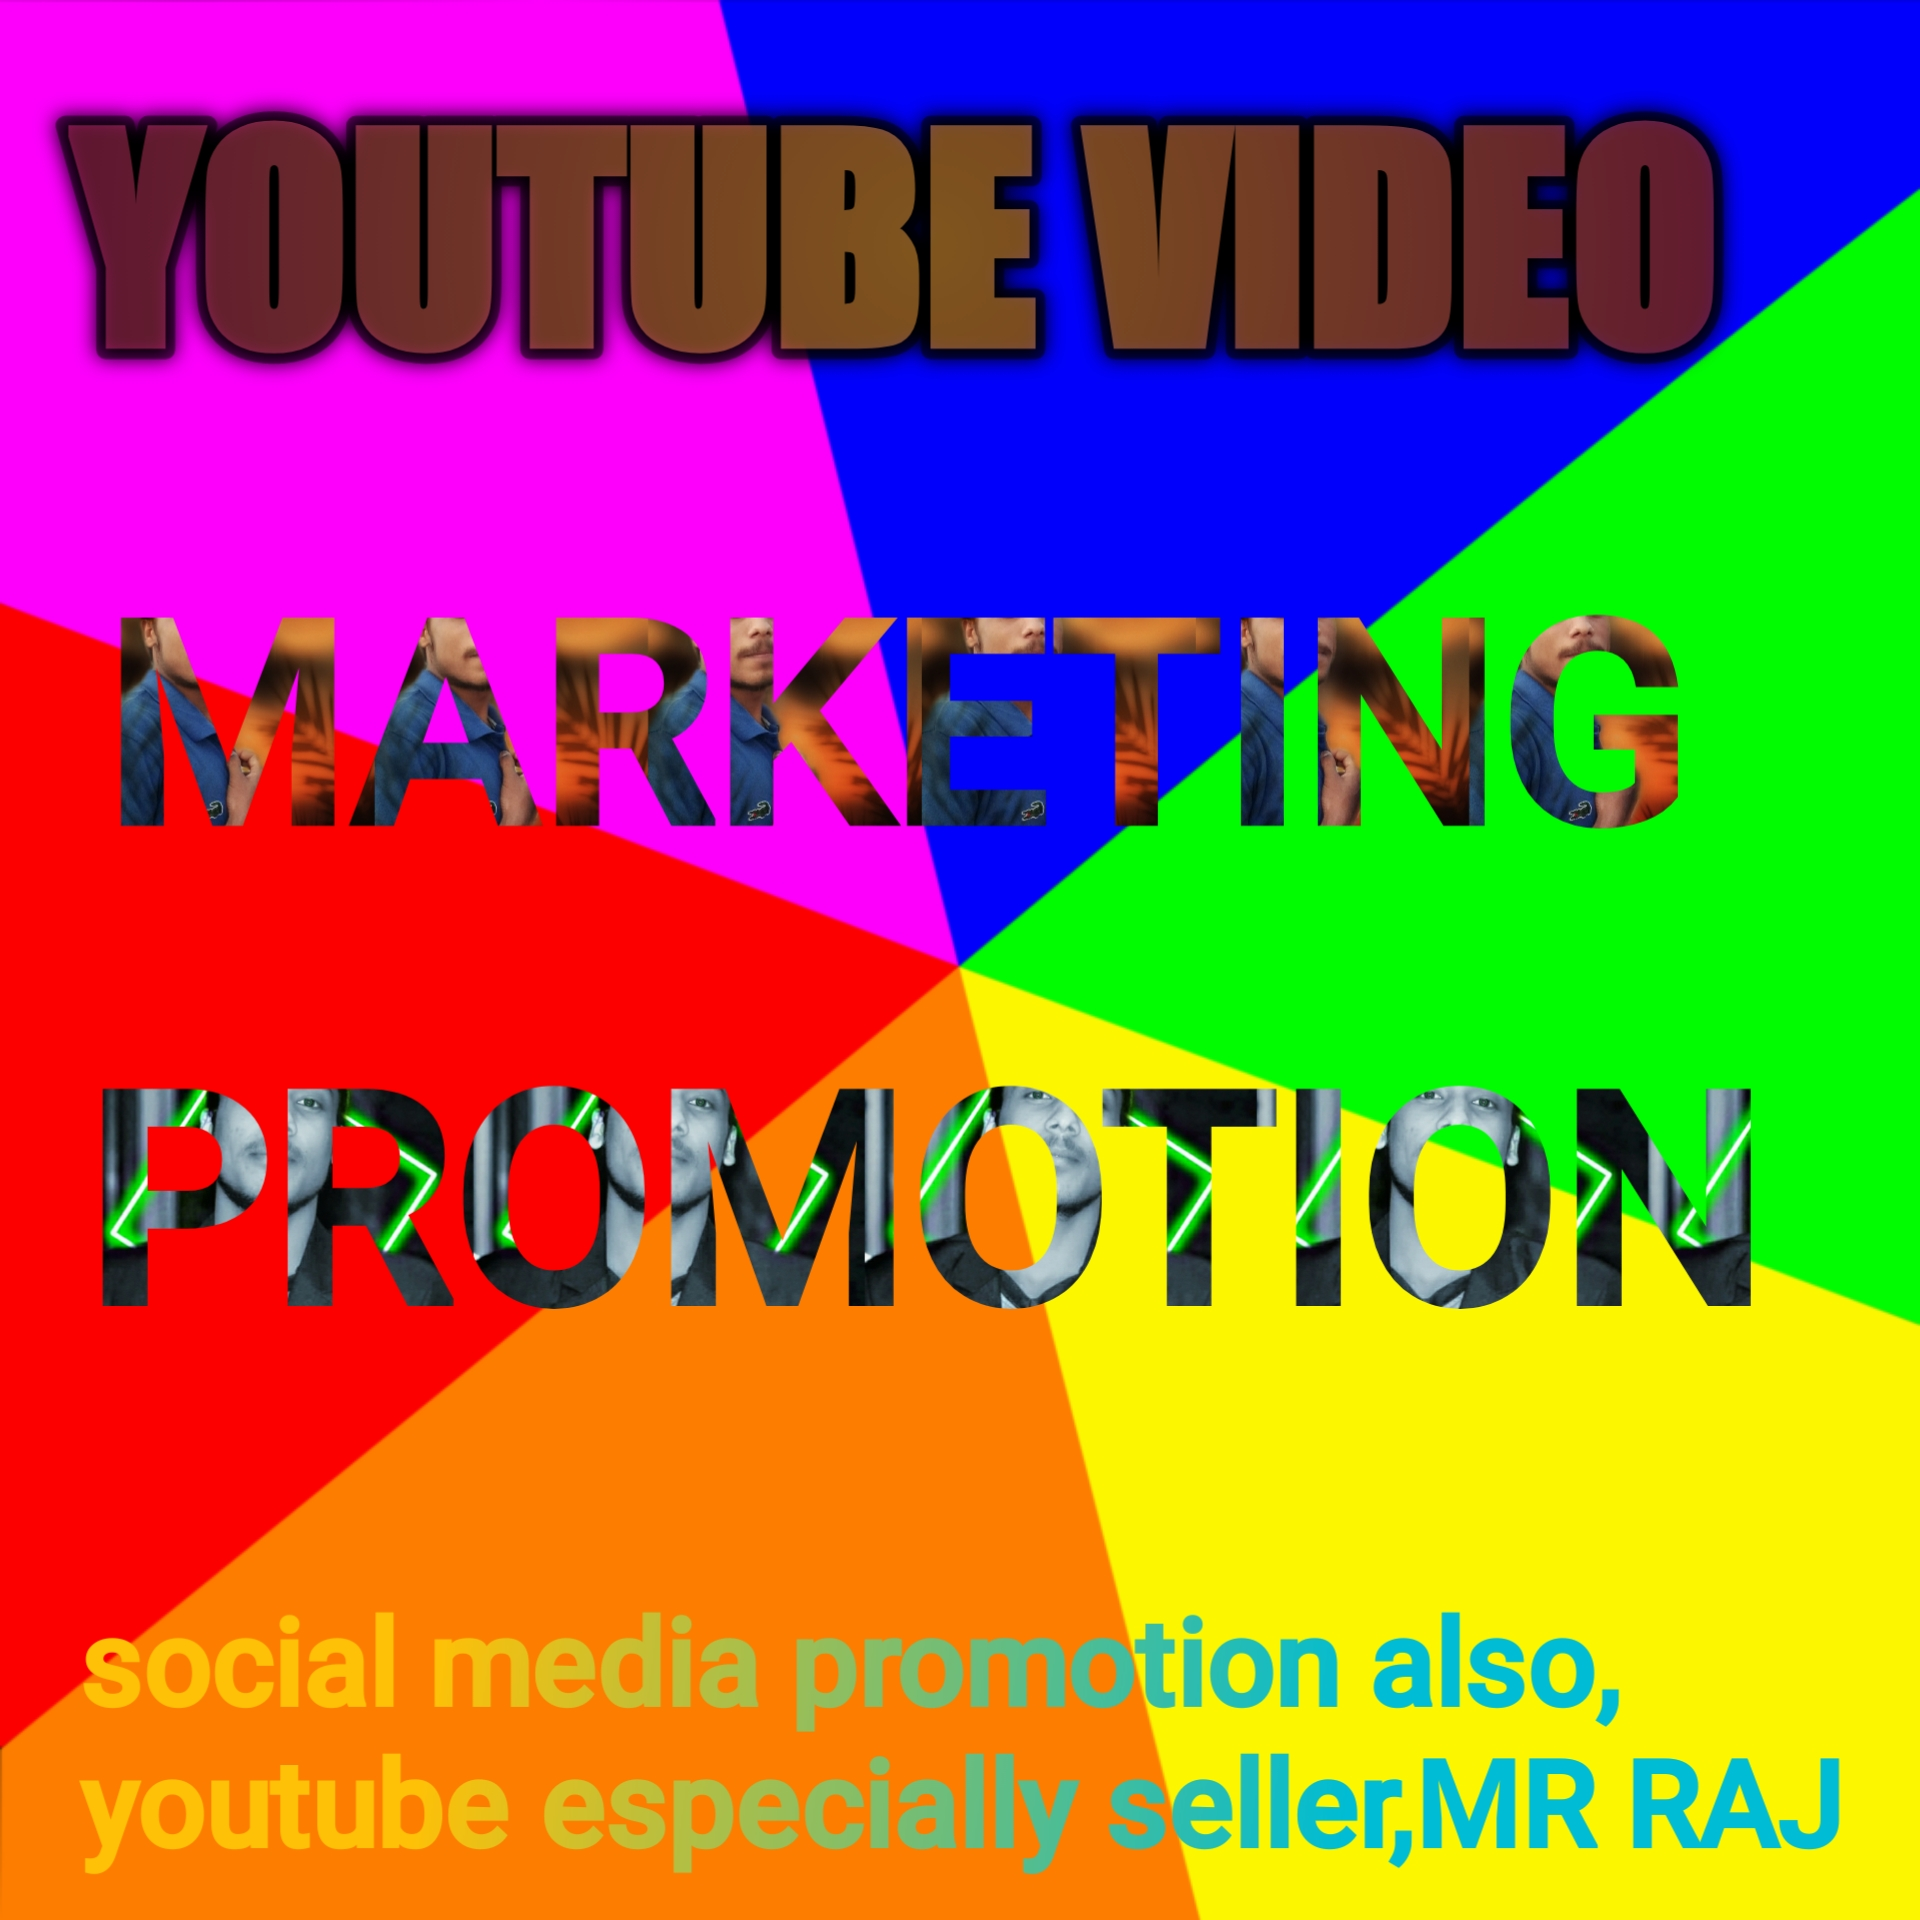 YouTube video marketing promotion.